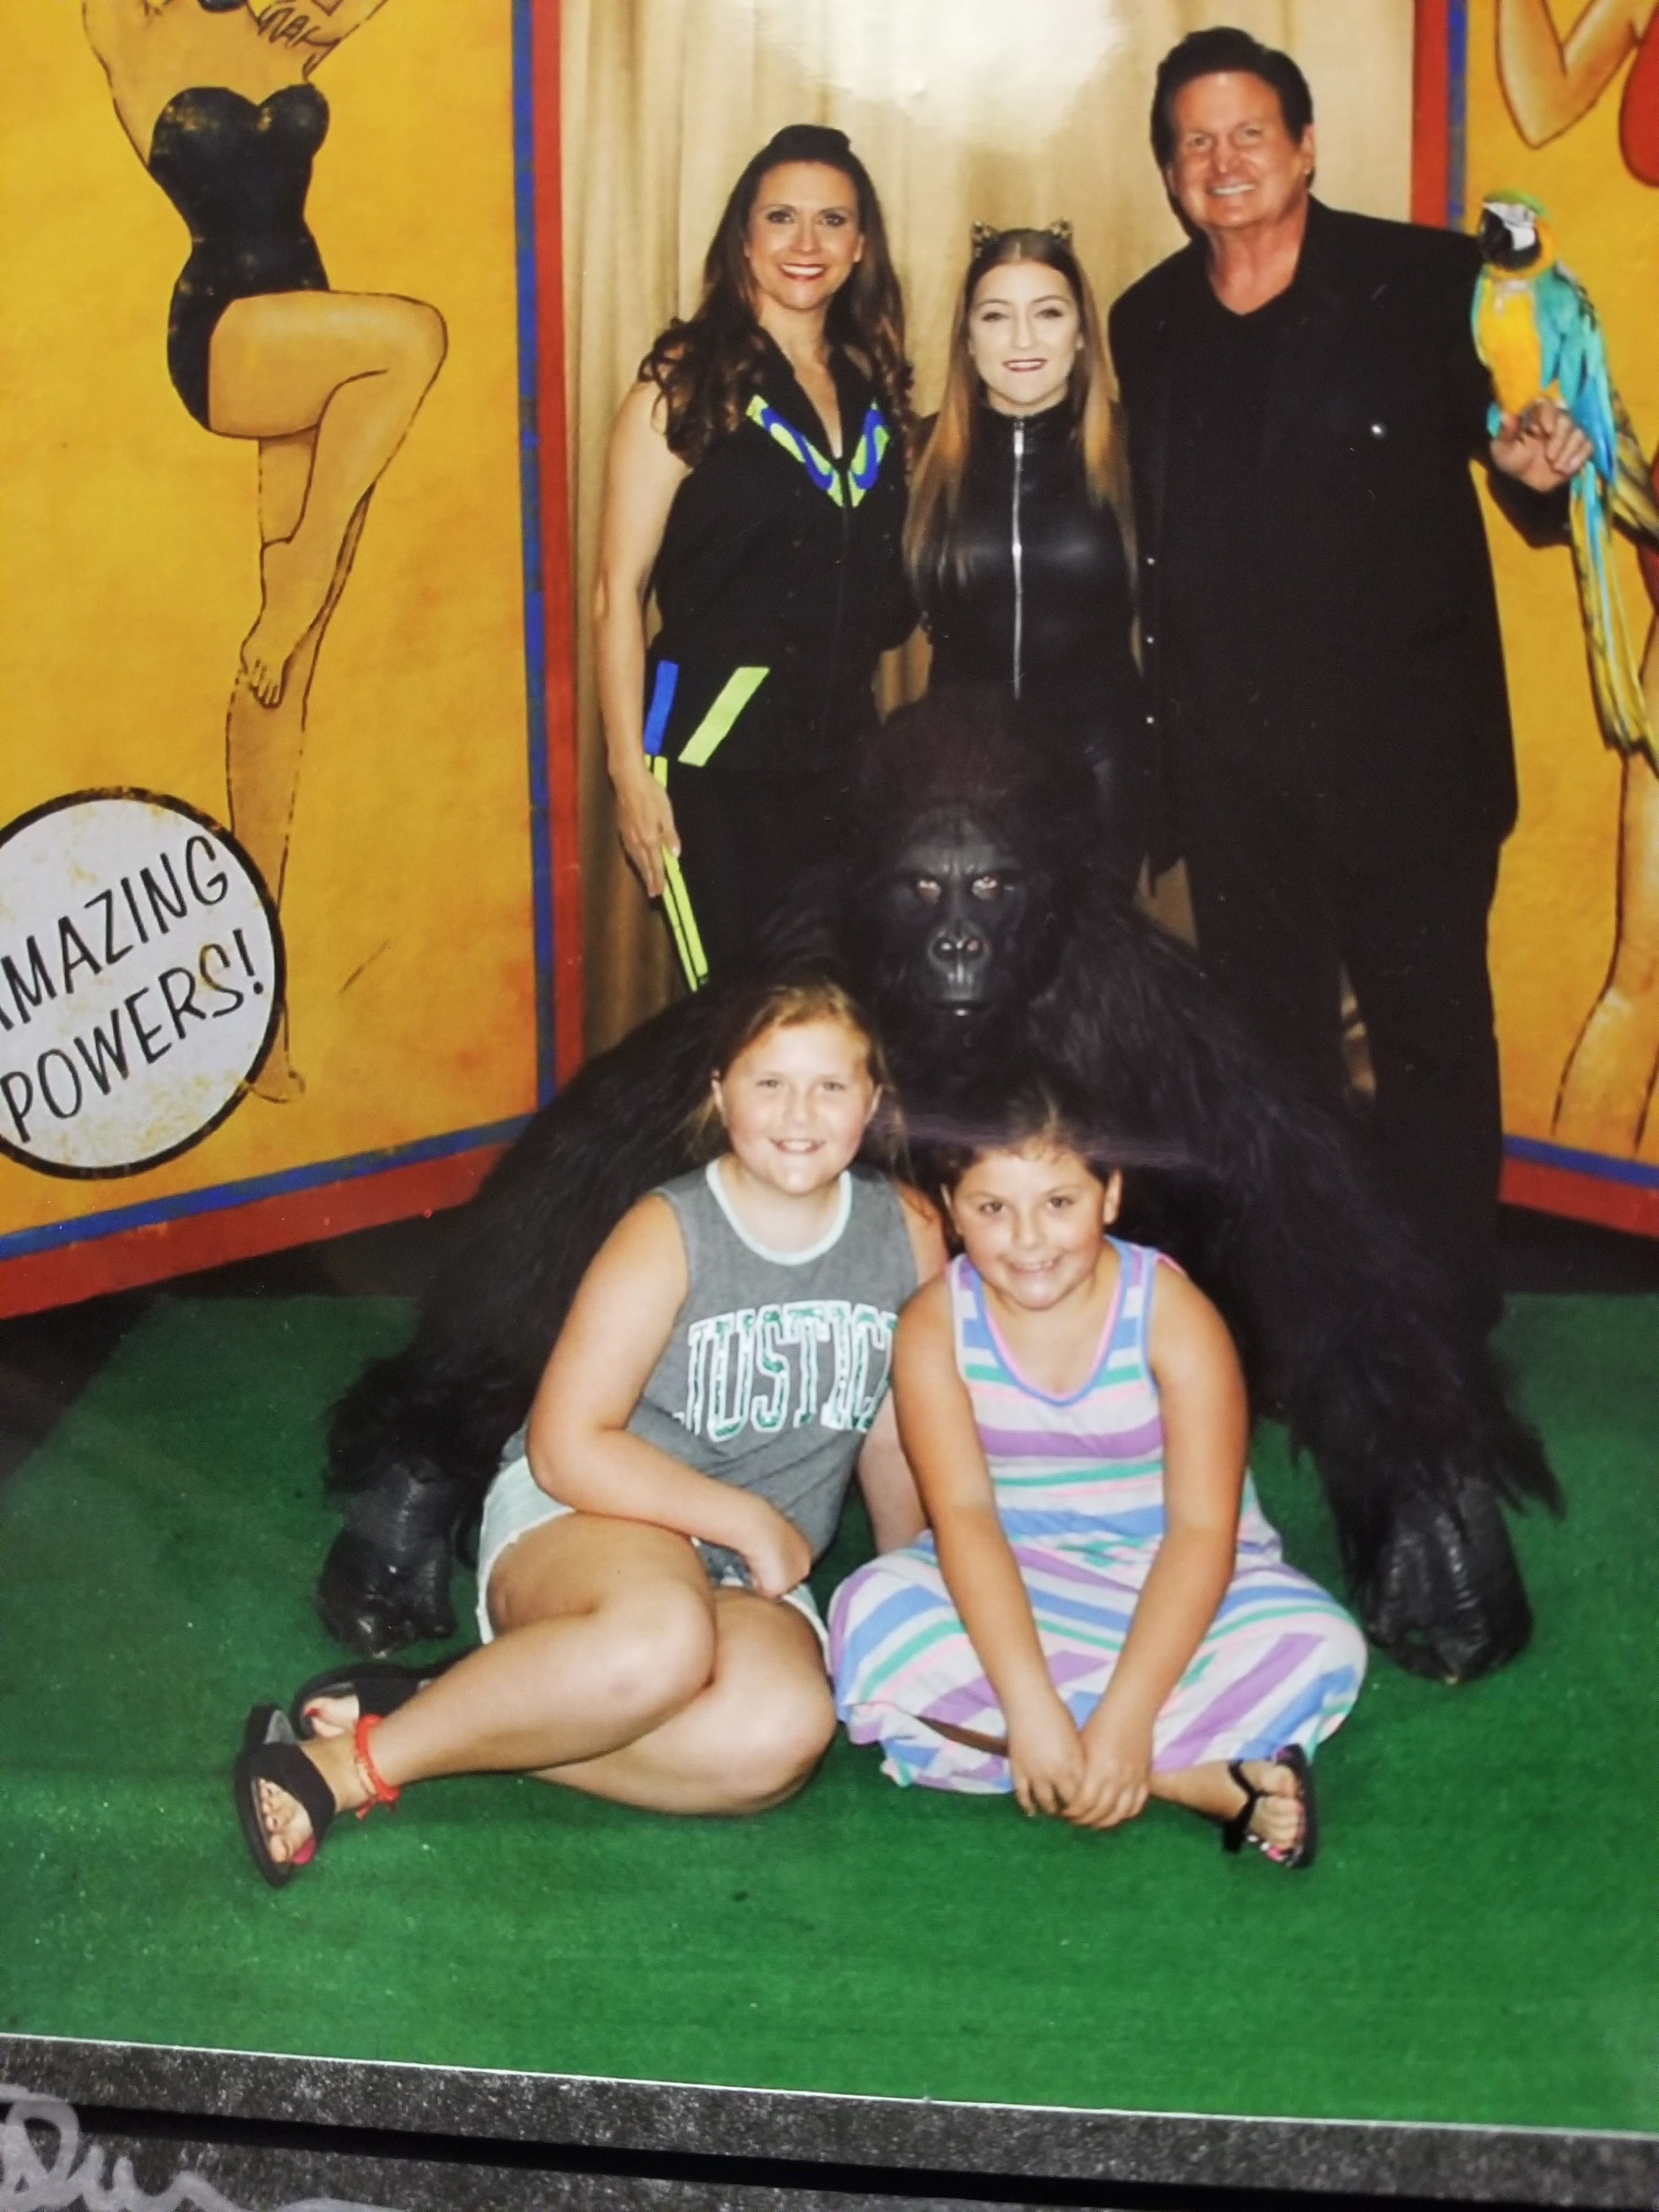 Family with a Gorilla at Hamners' Unvelievable Family Variety Show